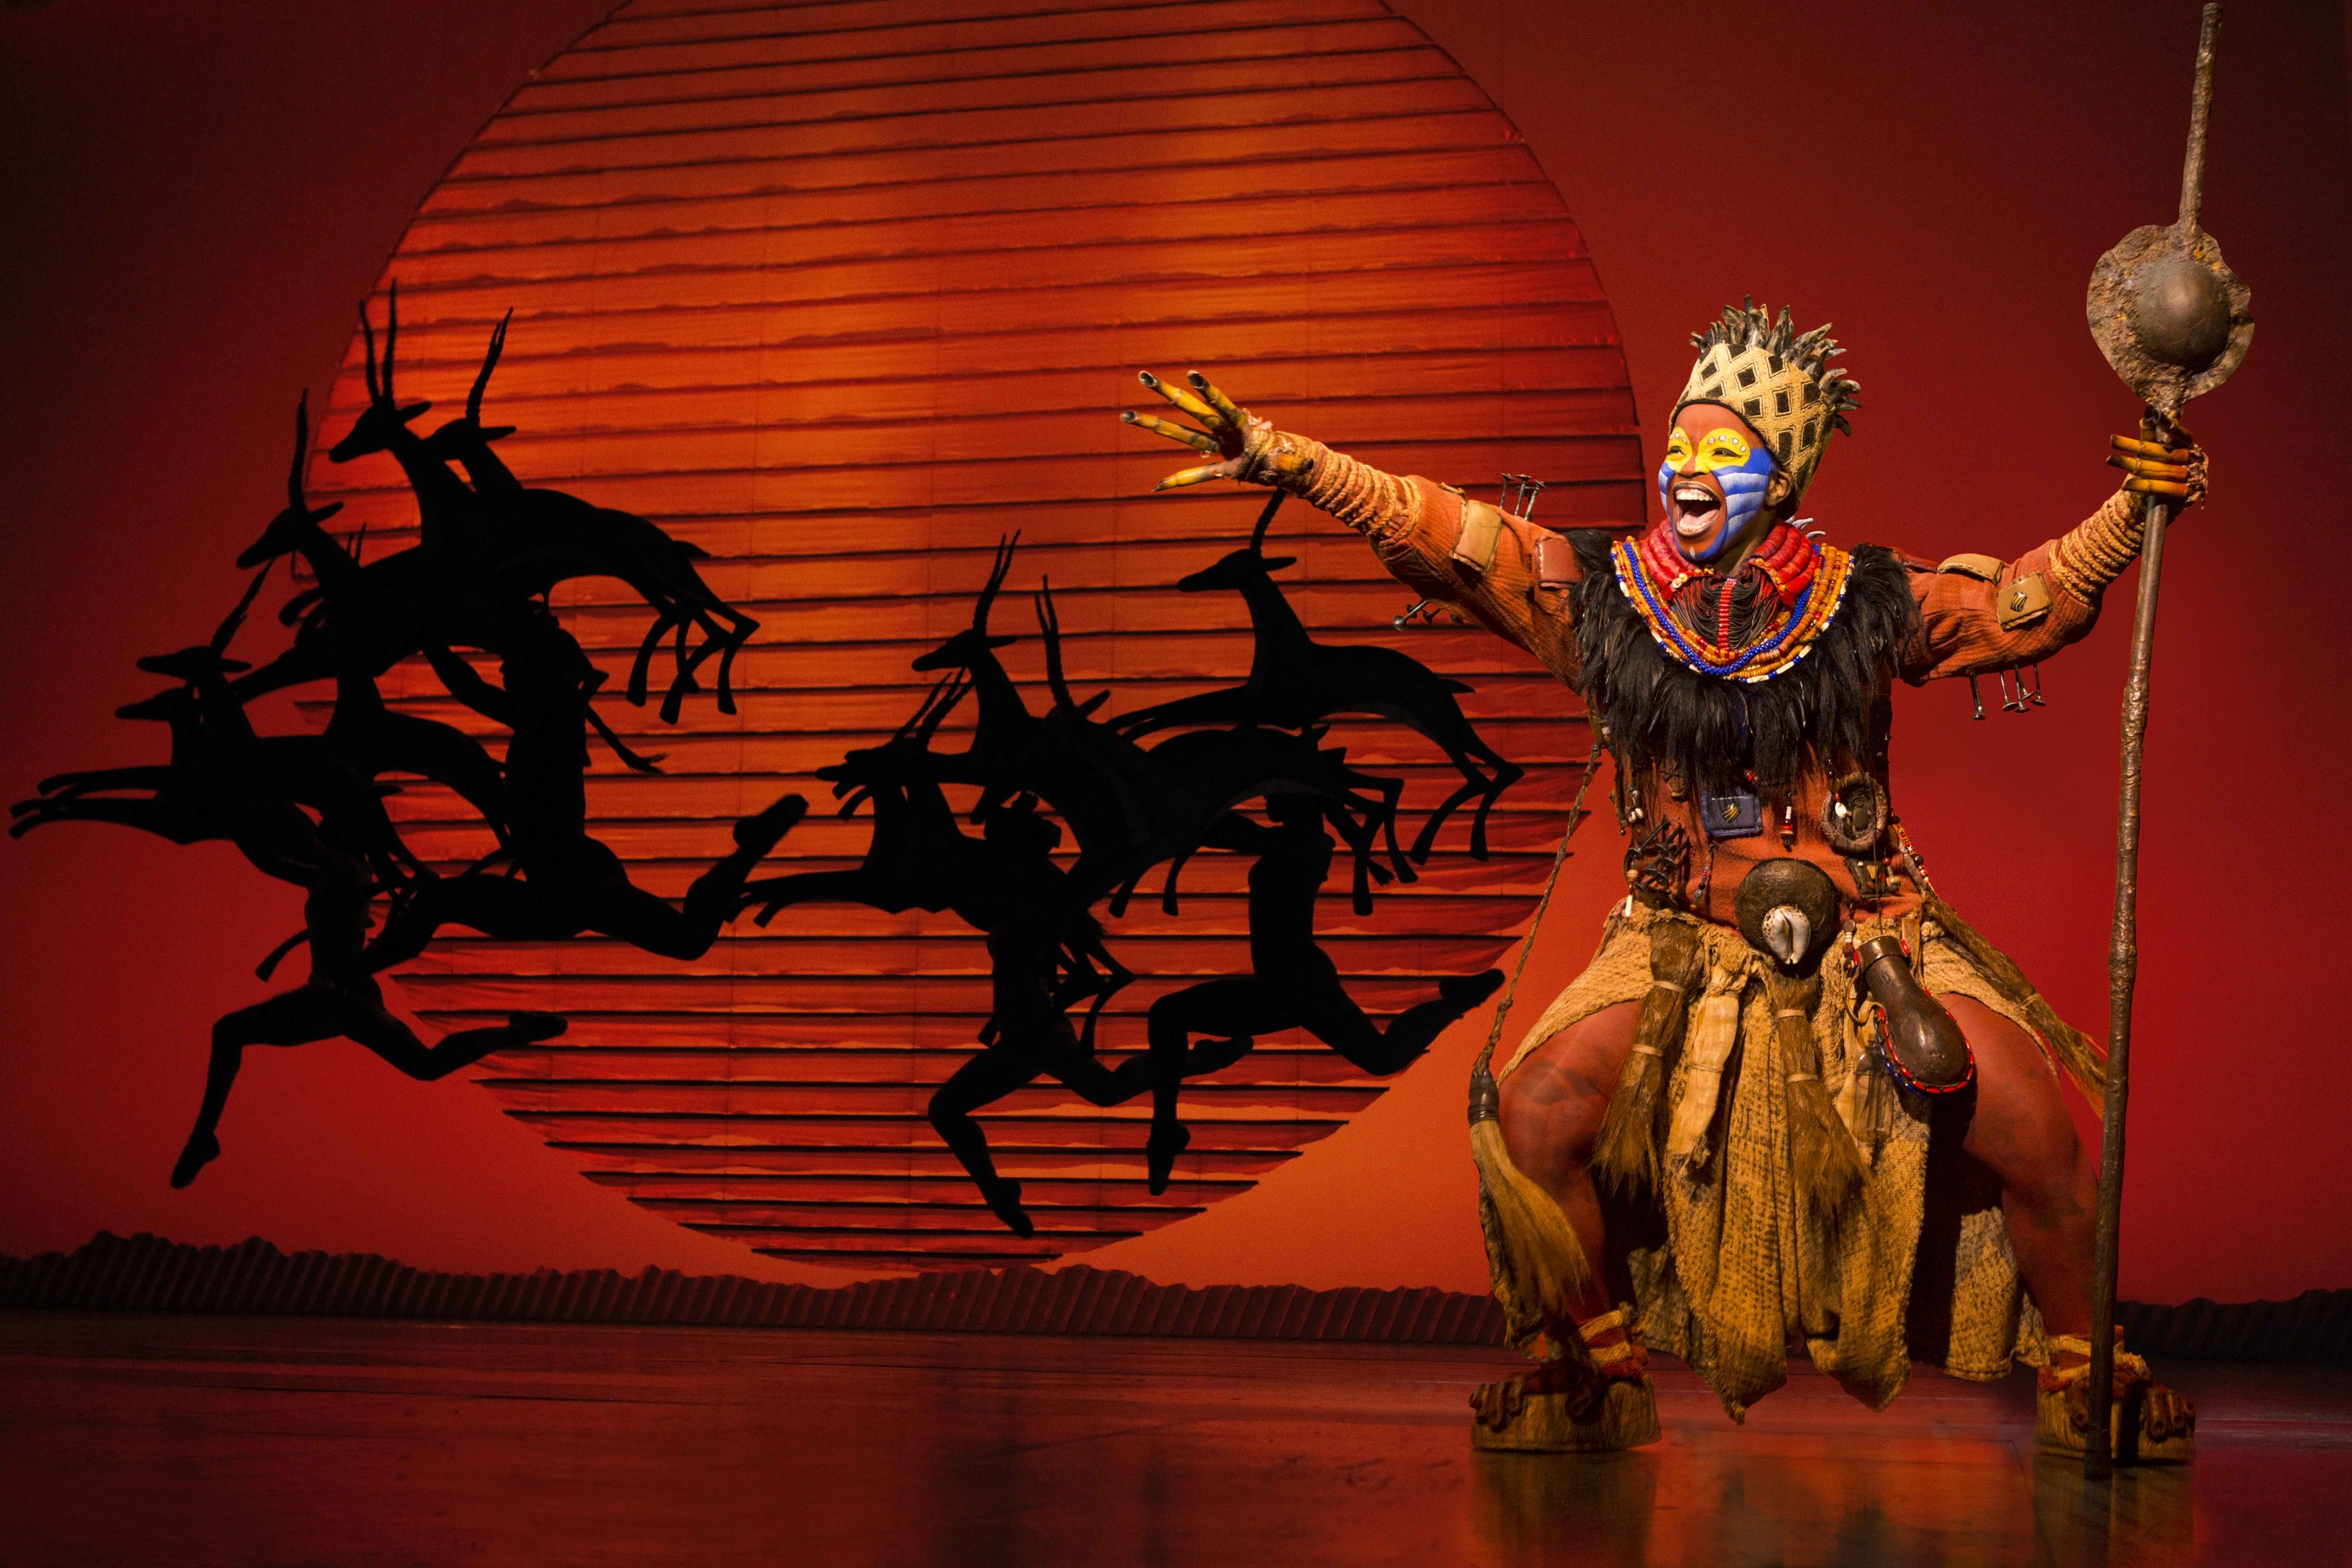 Disney's The Lion King musical is roaring its way to Hong Kong this December